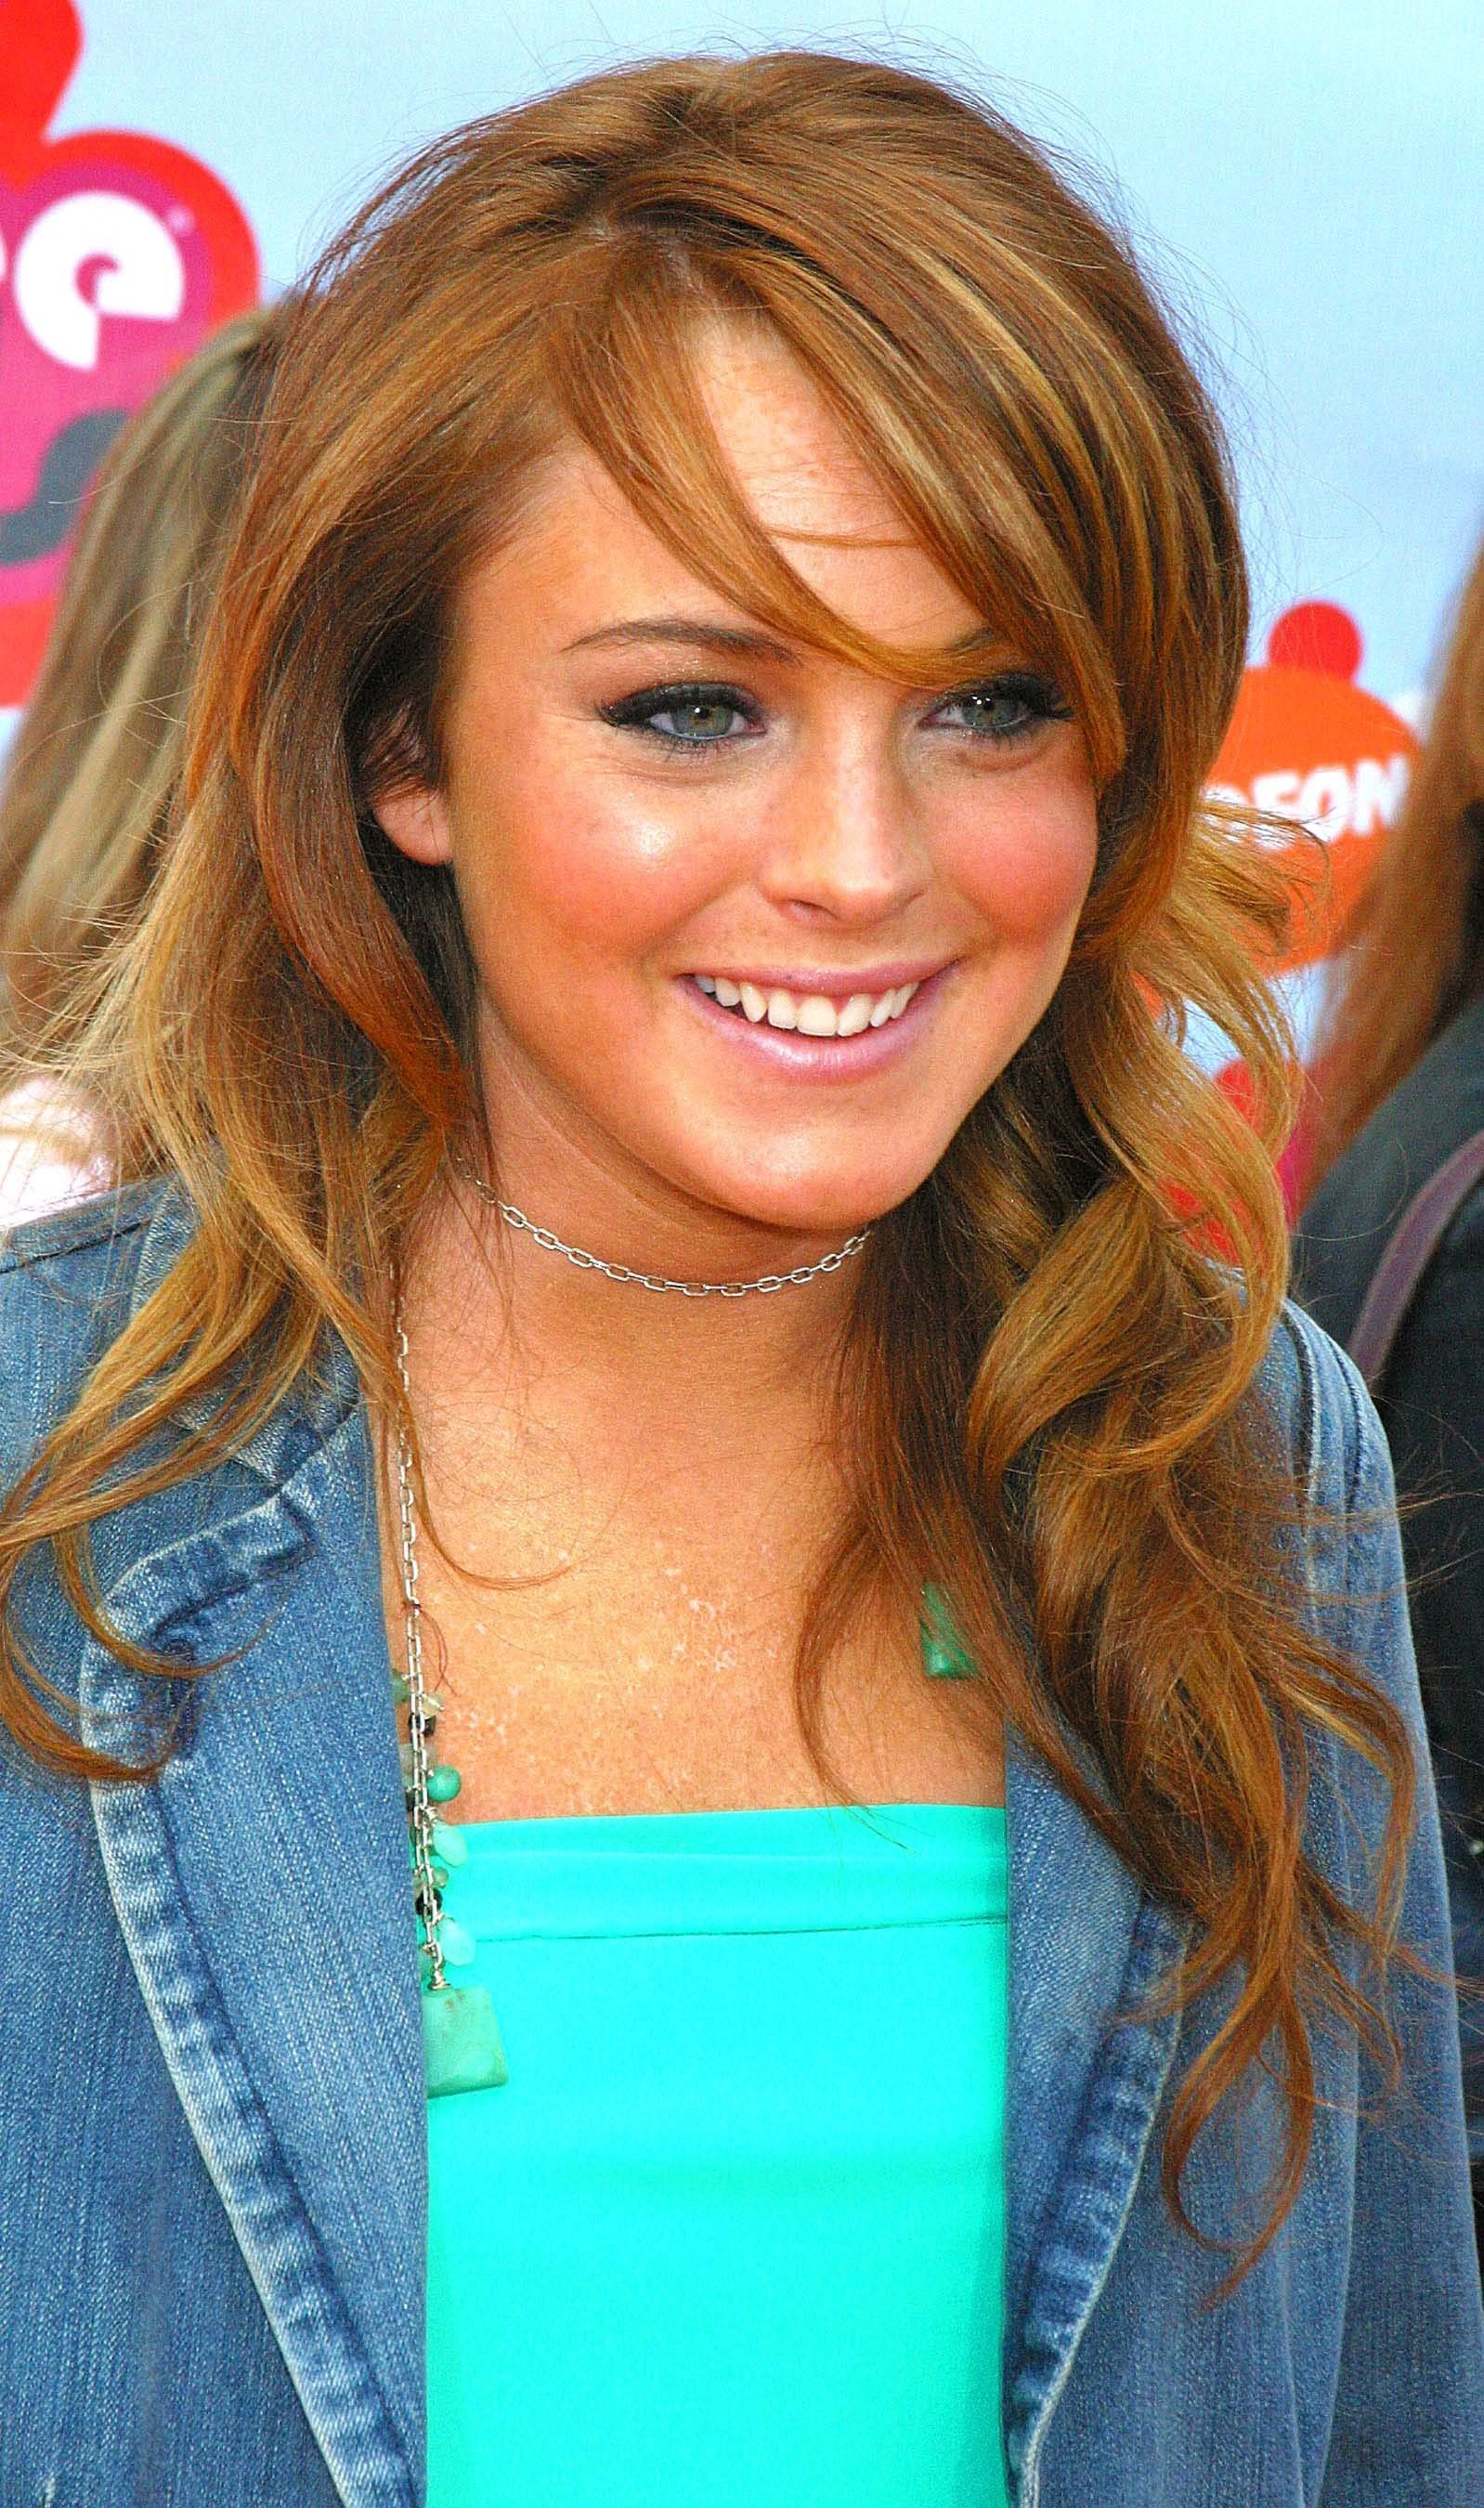 Lindsay Lohan Photo Gallery - Page #10